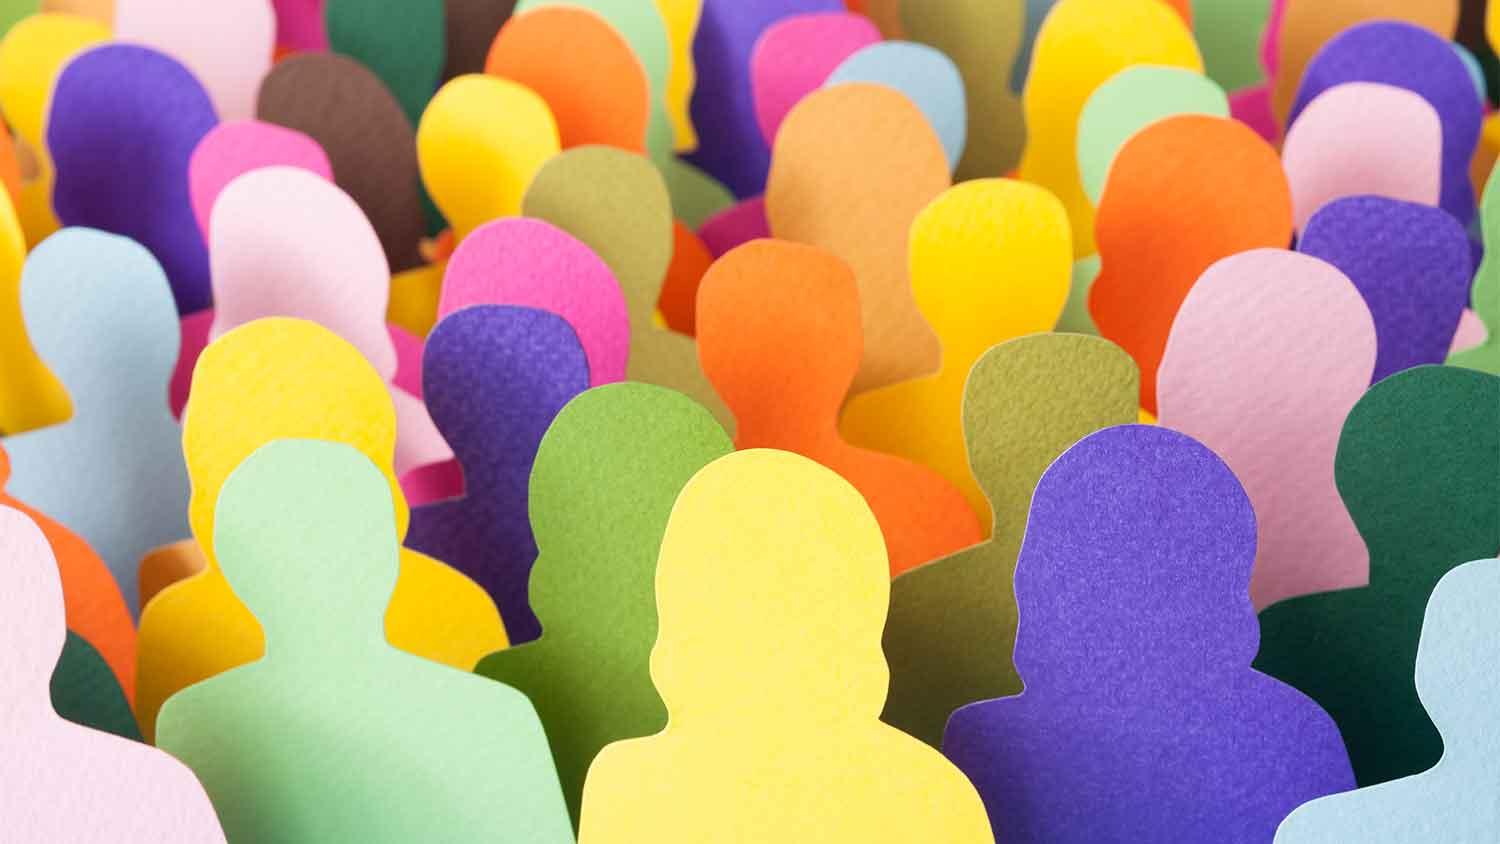 Card board cut outs of people of different colours